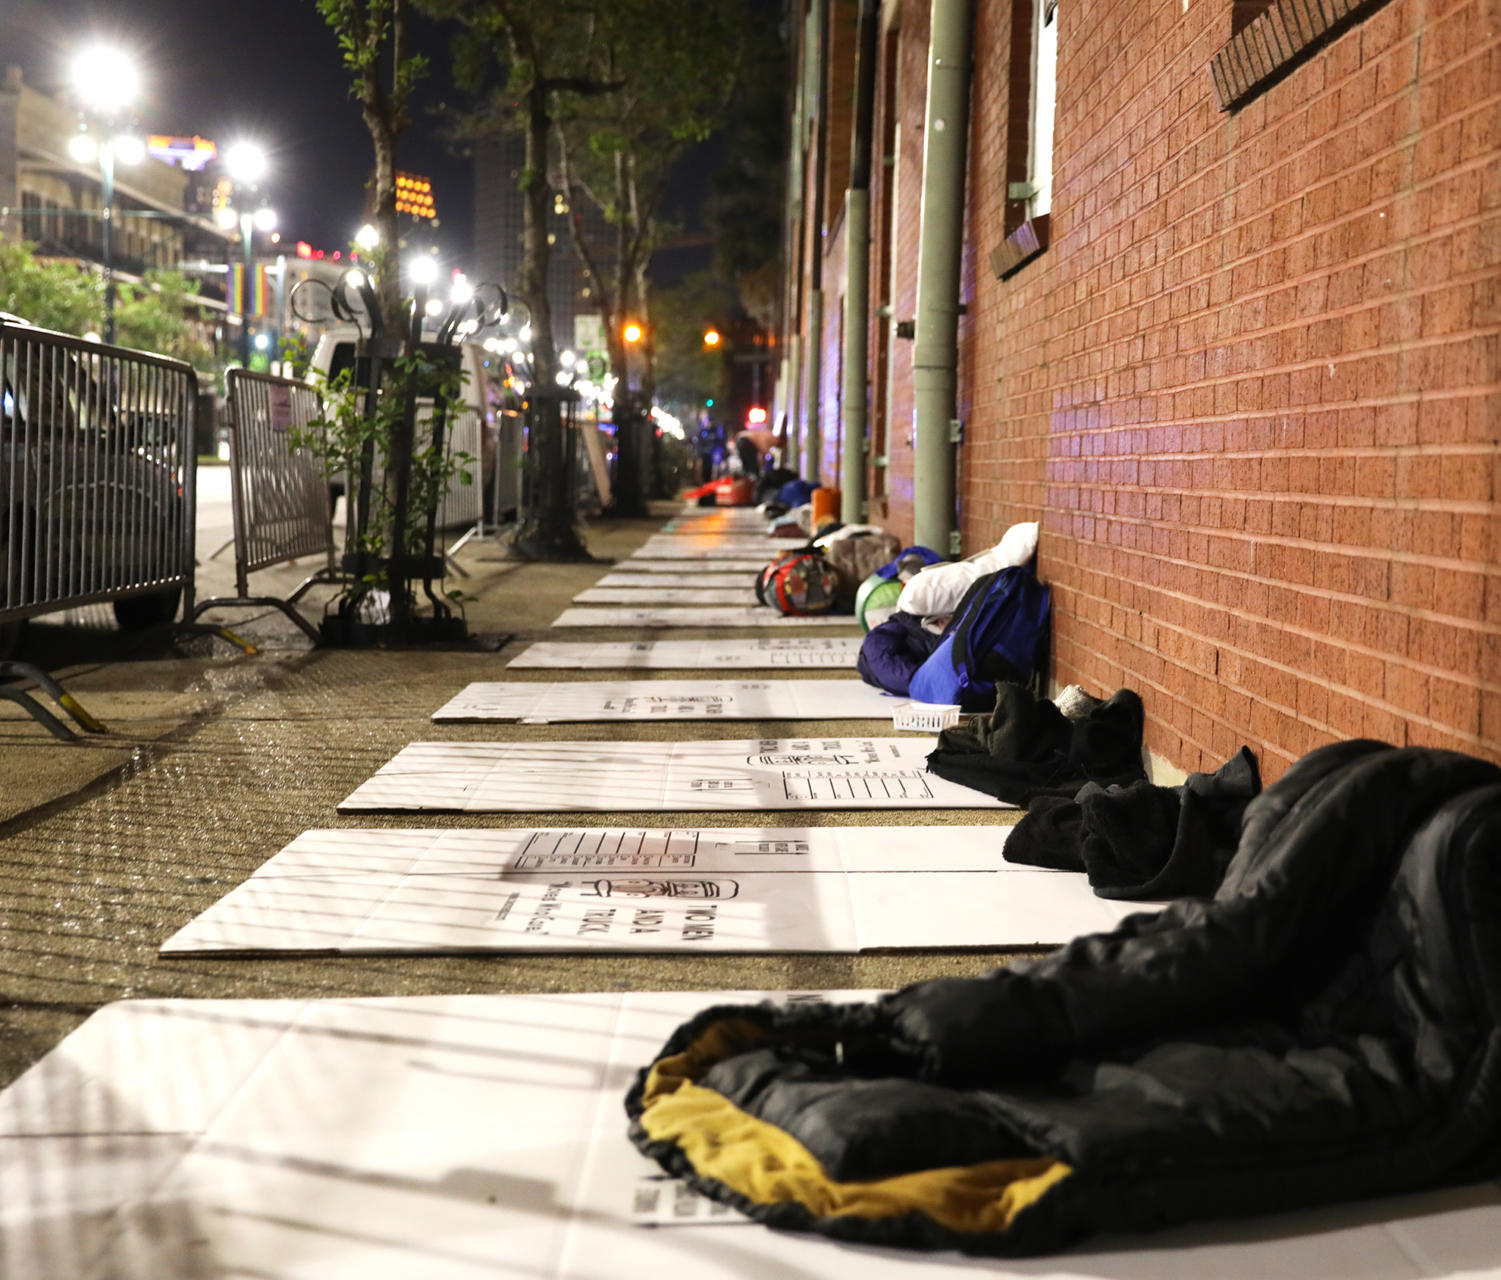 Sleeping bags lined the sidewalk of N. Rampart St. outside of Covenant House. Participants slept outside to show support for homeless youth. Photo credit: Andres Fuentes